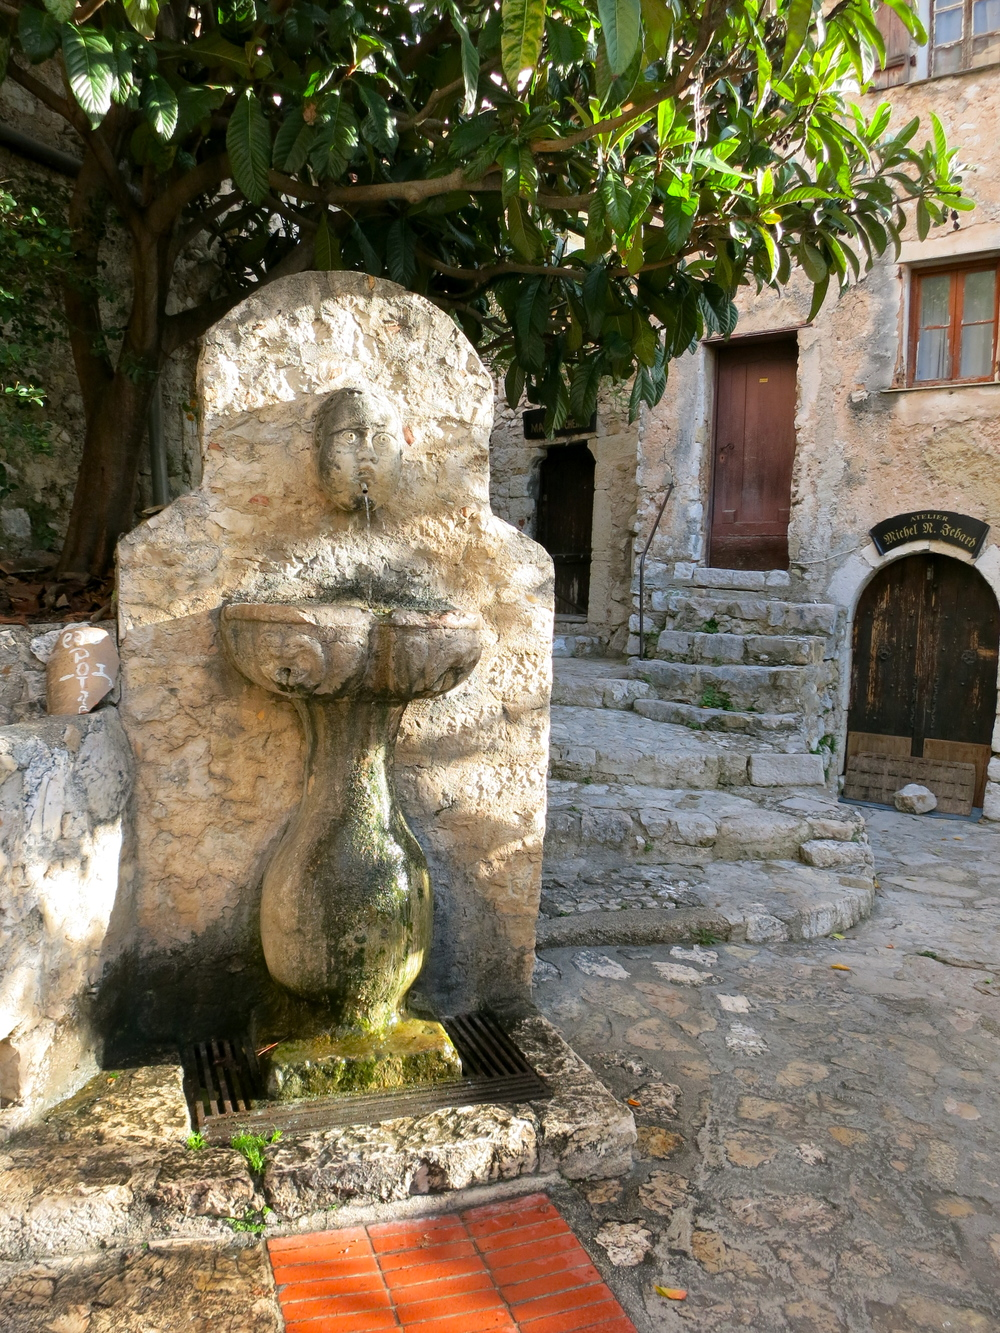 This fountain in the market square was the only source of water in medieval Eze. The square itself was no bigger than 12' by 12' in total. © 2014 Gail Jessen